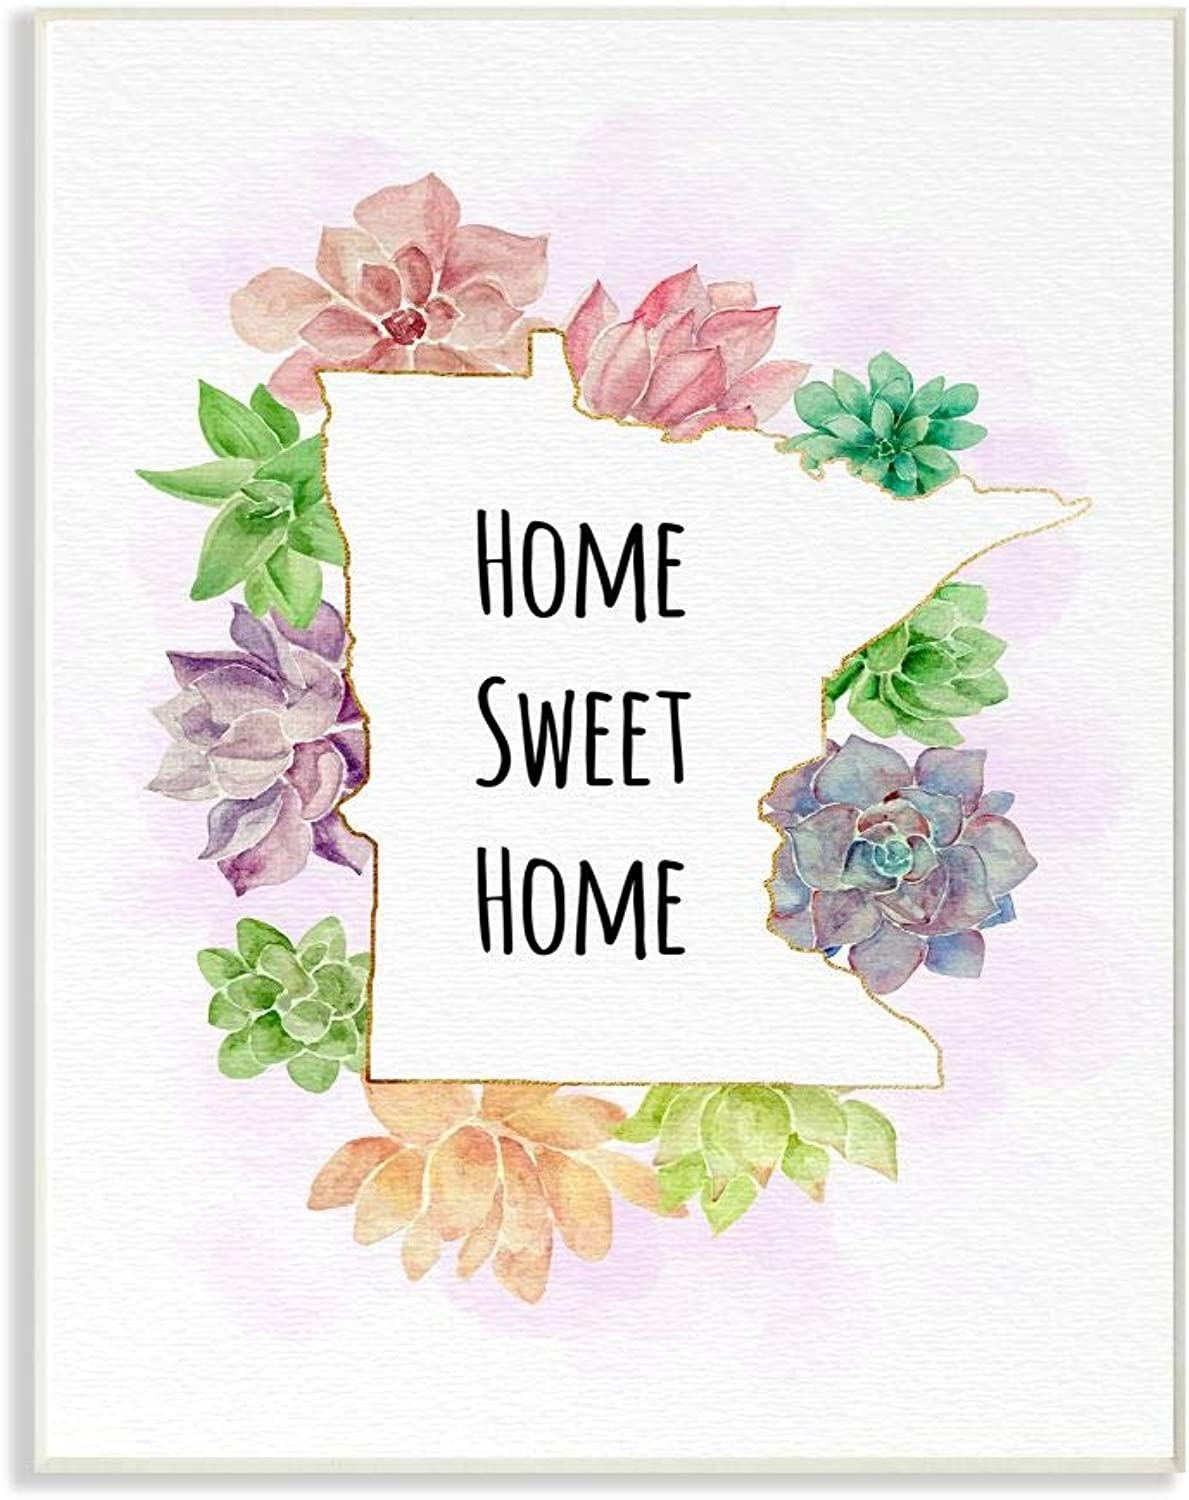 The Stupell Home Decor Collection cw-1524_wd_12x18 Minnesota State Home Sweet Home Succulent Watercolor Vignette Wall Plaque Art, 12 x 18